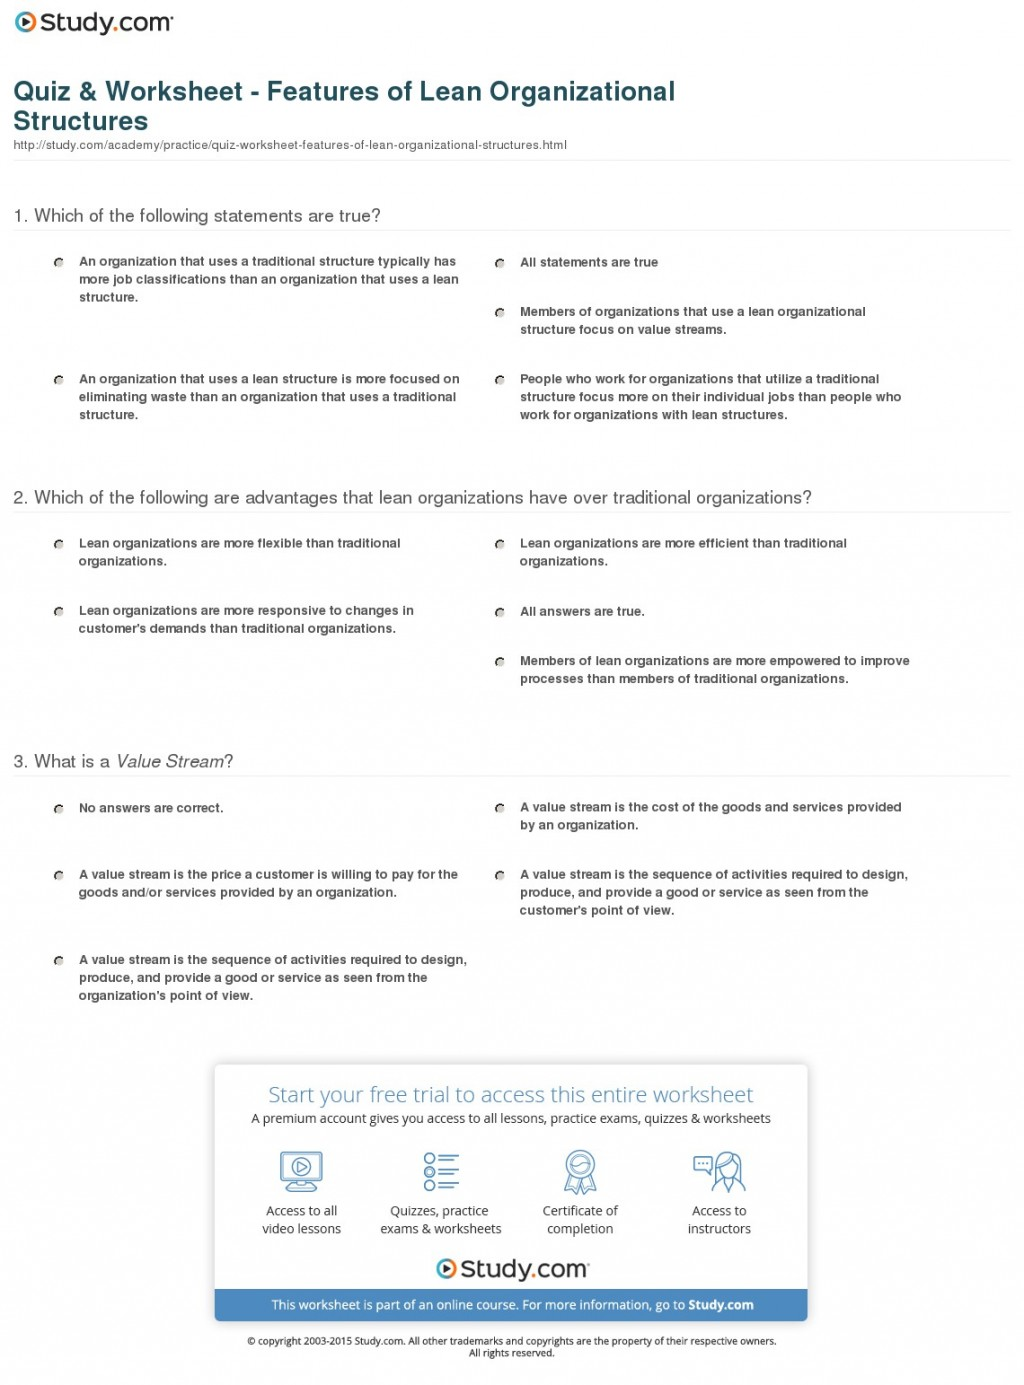 009 Essay Example Cause And Effect Of Overpopulation Quiz Worksheet Features Lean Organizational Remarkable Large